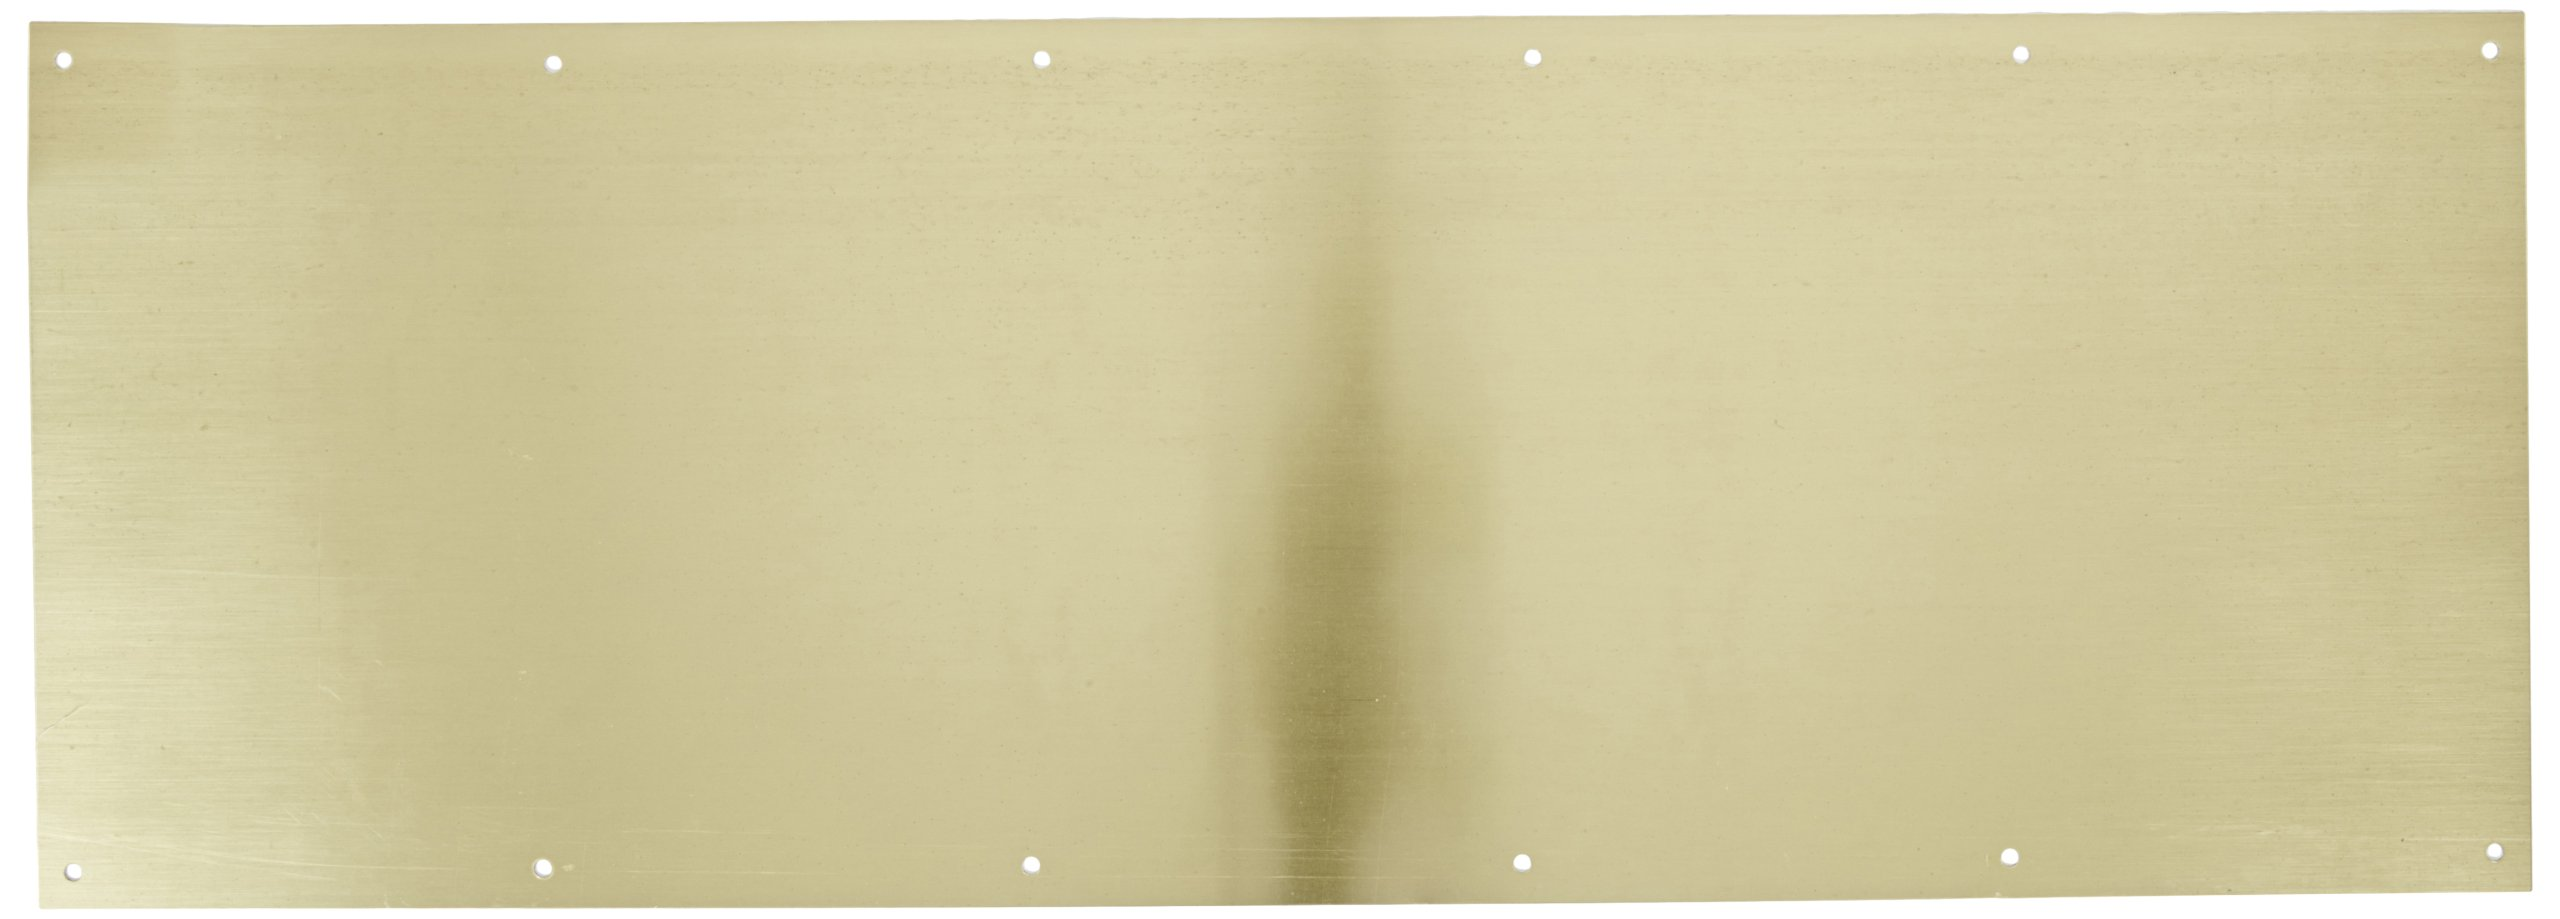 Rockwood K1050 Rectangular Kick Plate, Brass with Polished Clear Finish, 34'' Width x 8'' Height x 3/64'' Thickness by Rockwood (Image #1)